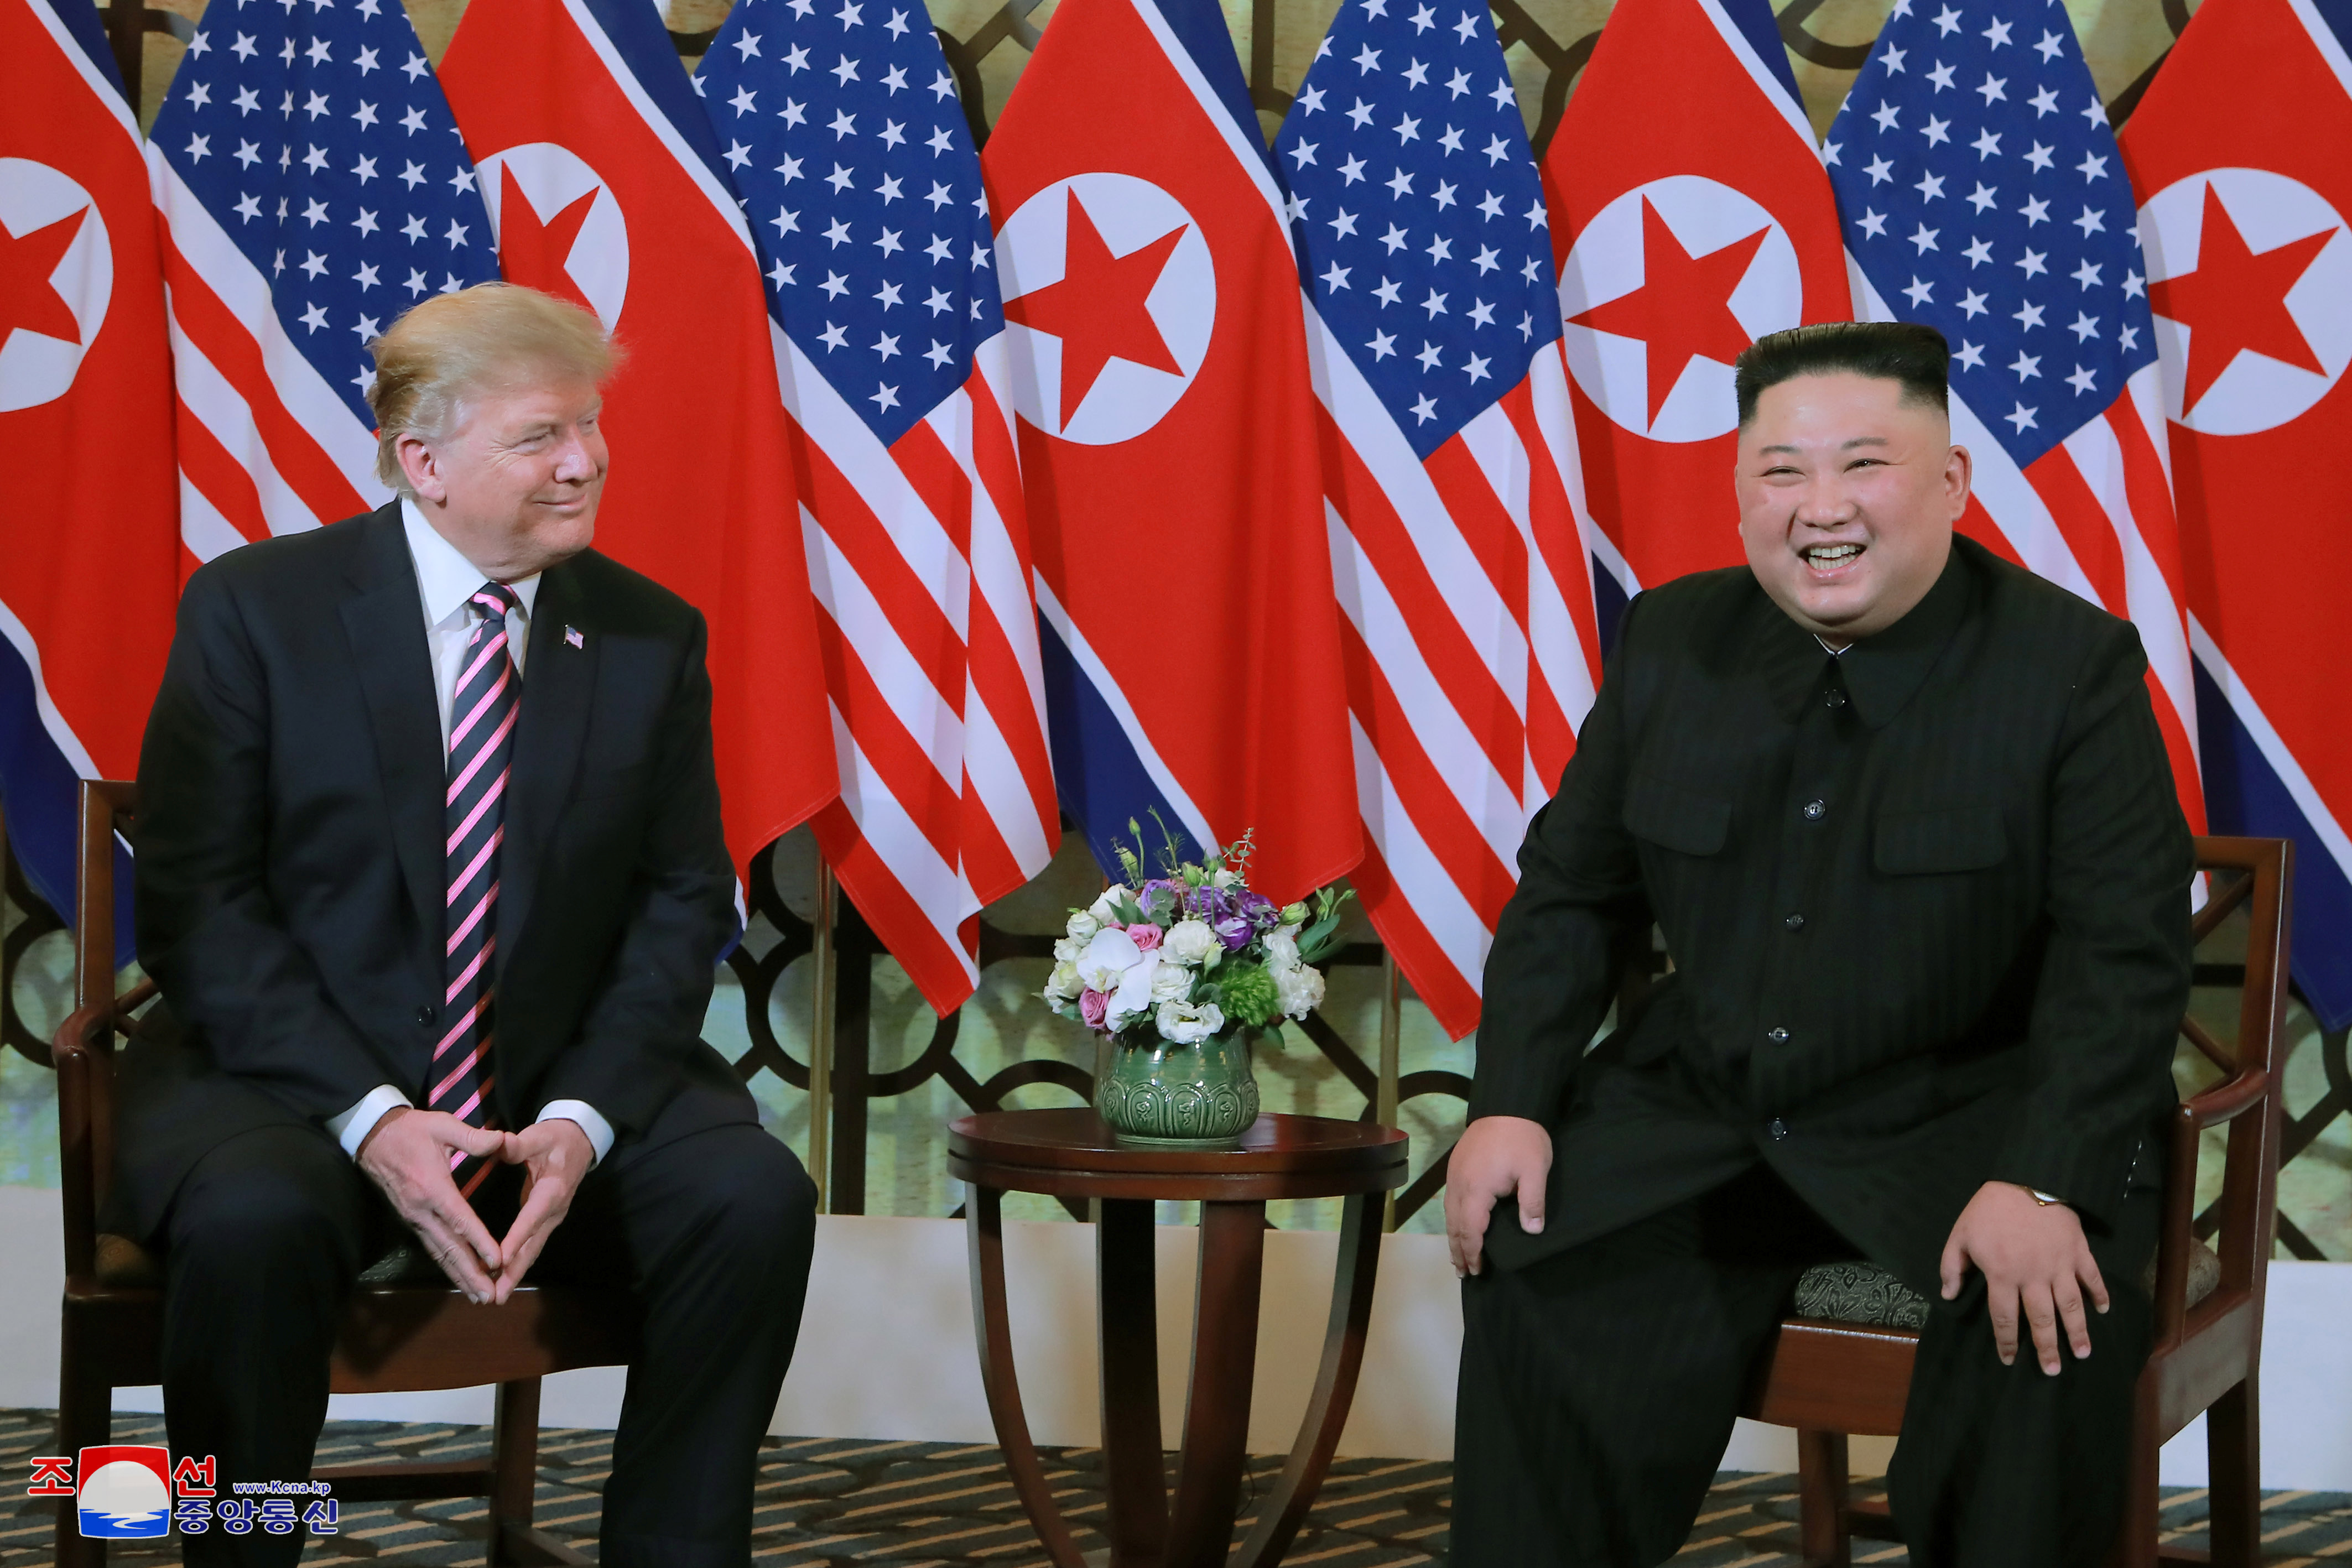 North Korea's leader Kim Jong Un and U.S. President Donald Trump meet during the second U.S.-North Korea summit in Hanoi